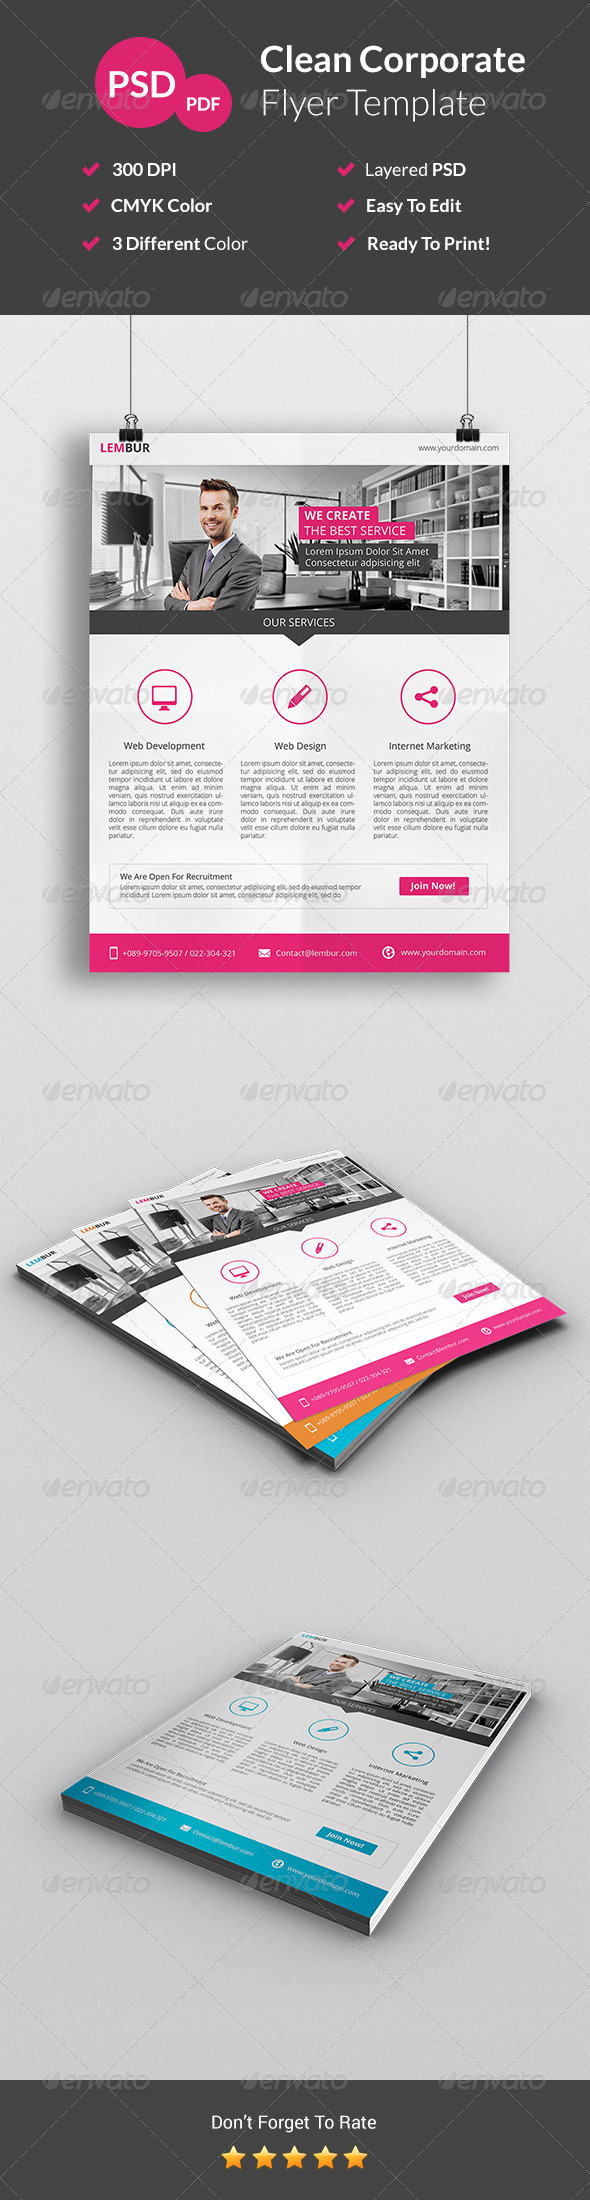 GraphicRiver Clean Corporate Flyer 7546094